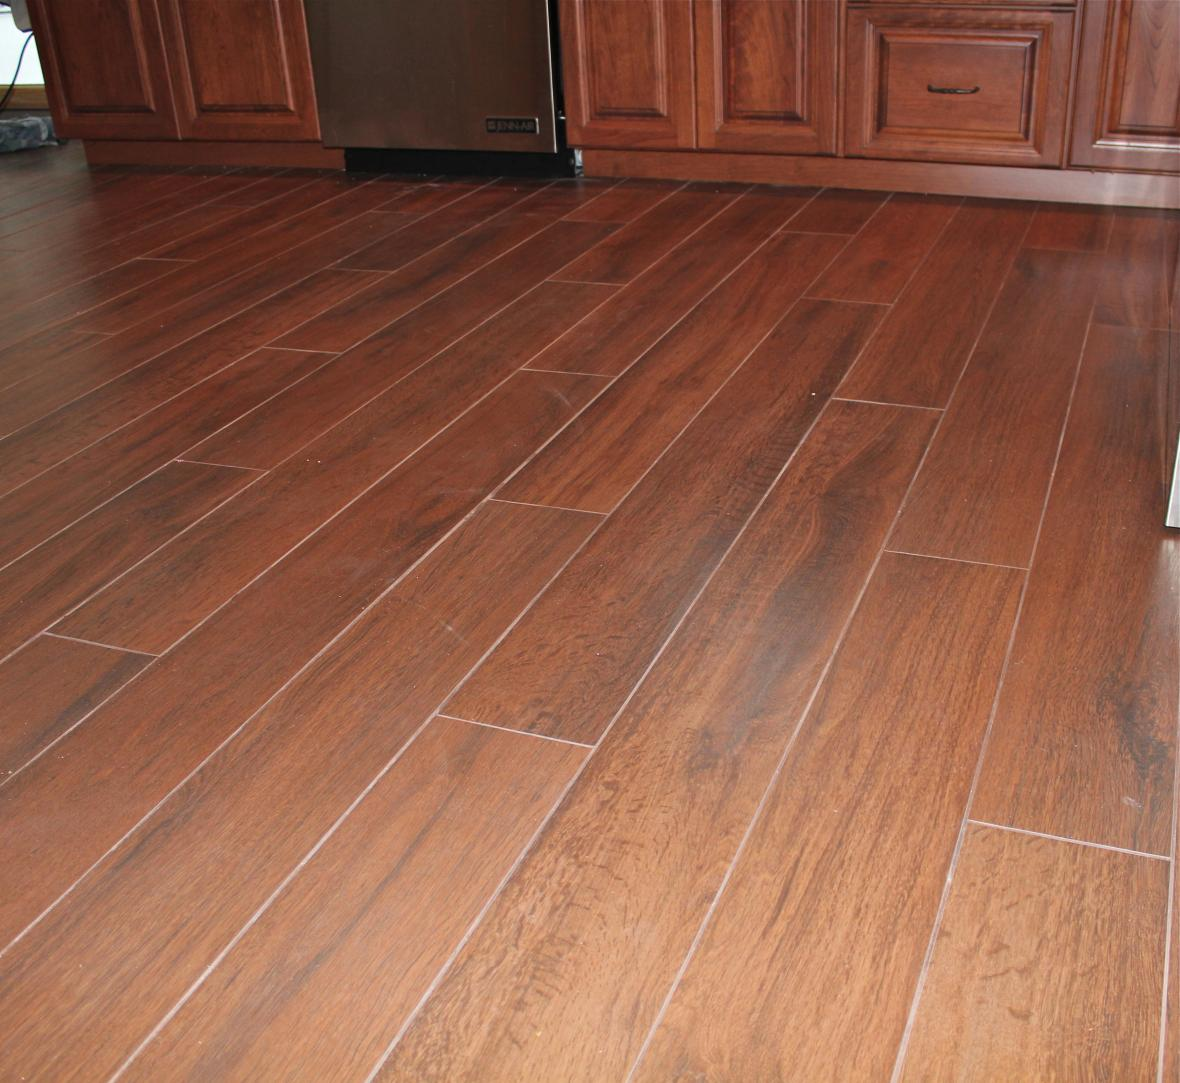 How To Install Kitchen Floor Tile Laying Porcelain In The Laundry